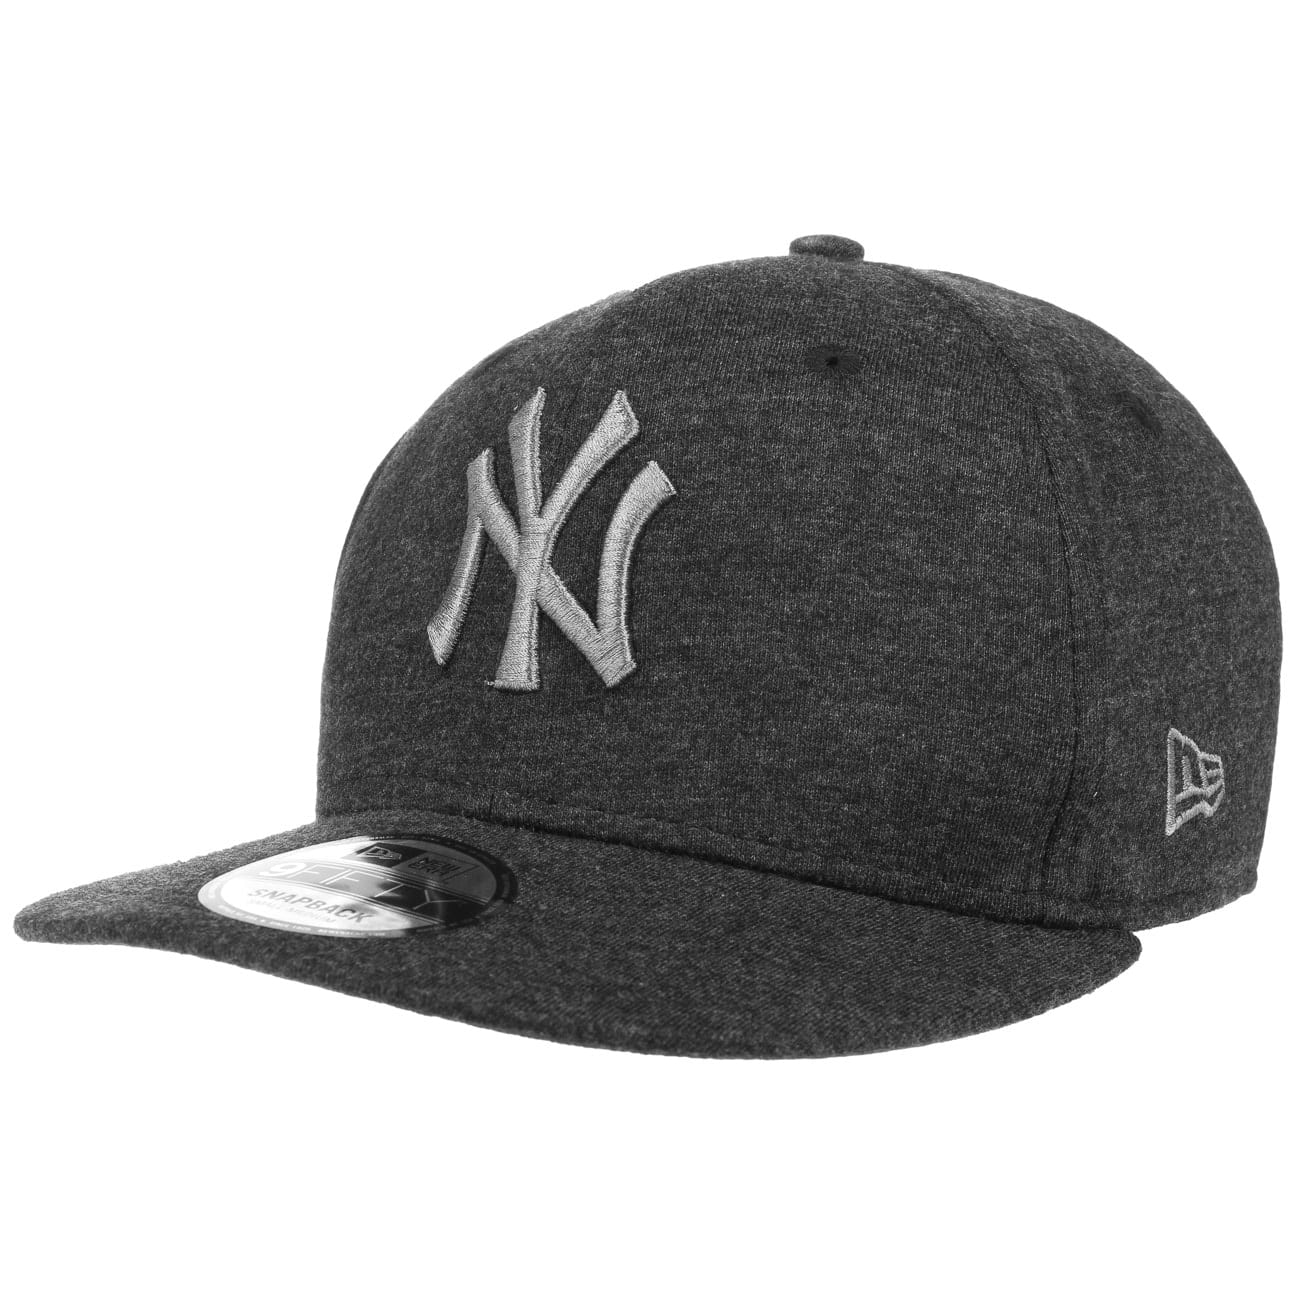 9fifty-jersey-yankees-cap-by-new-era-basecap